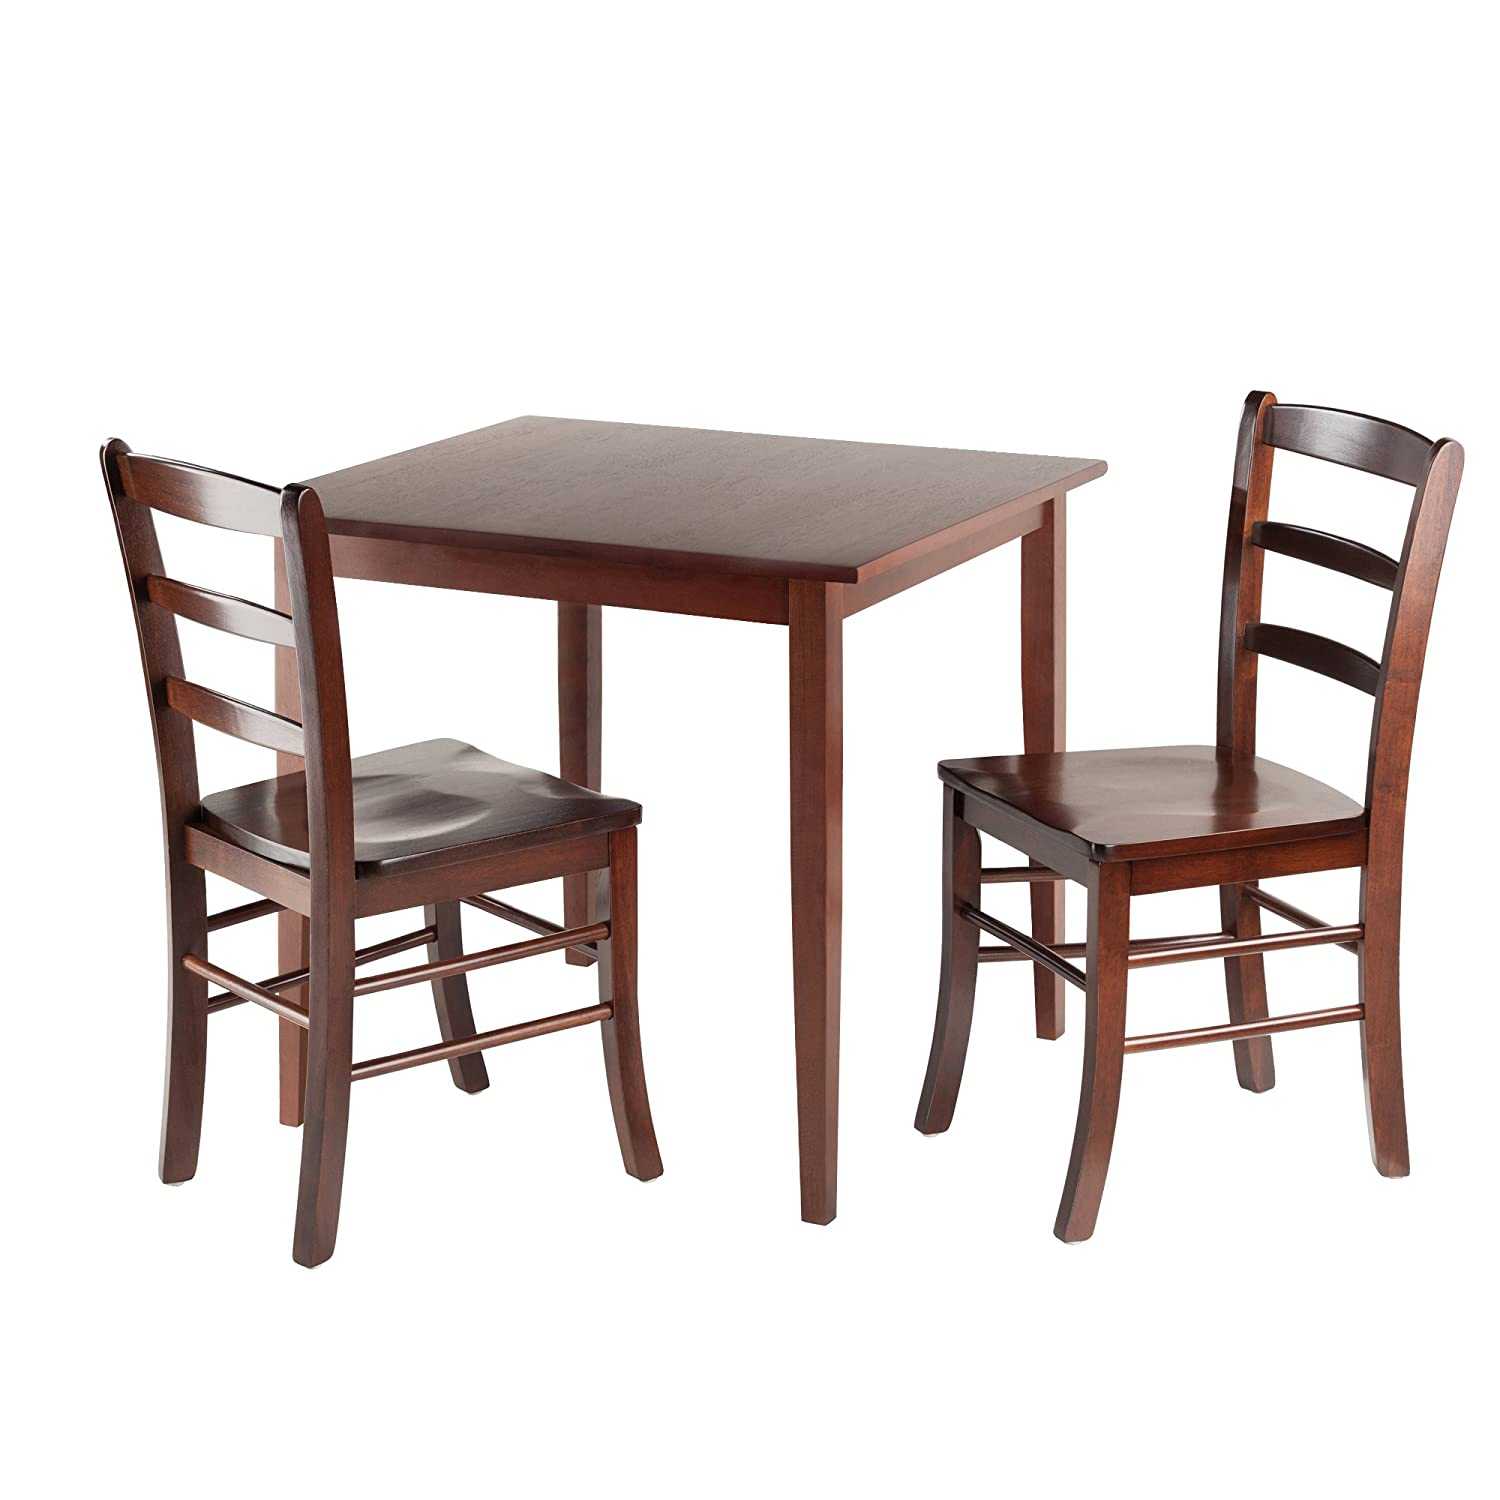 dining table sets. Amazon.com - Winsome Groveland Square Dining Table With 2 Chairs, 3-Piece Chairs Sets E